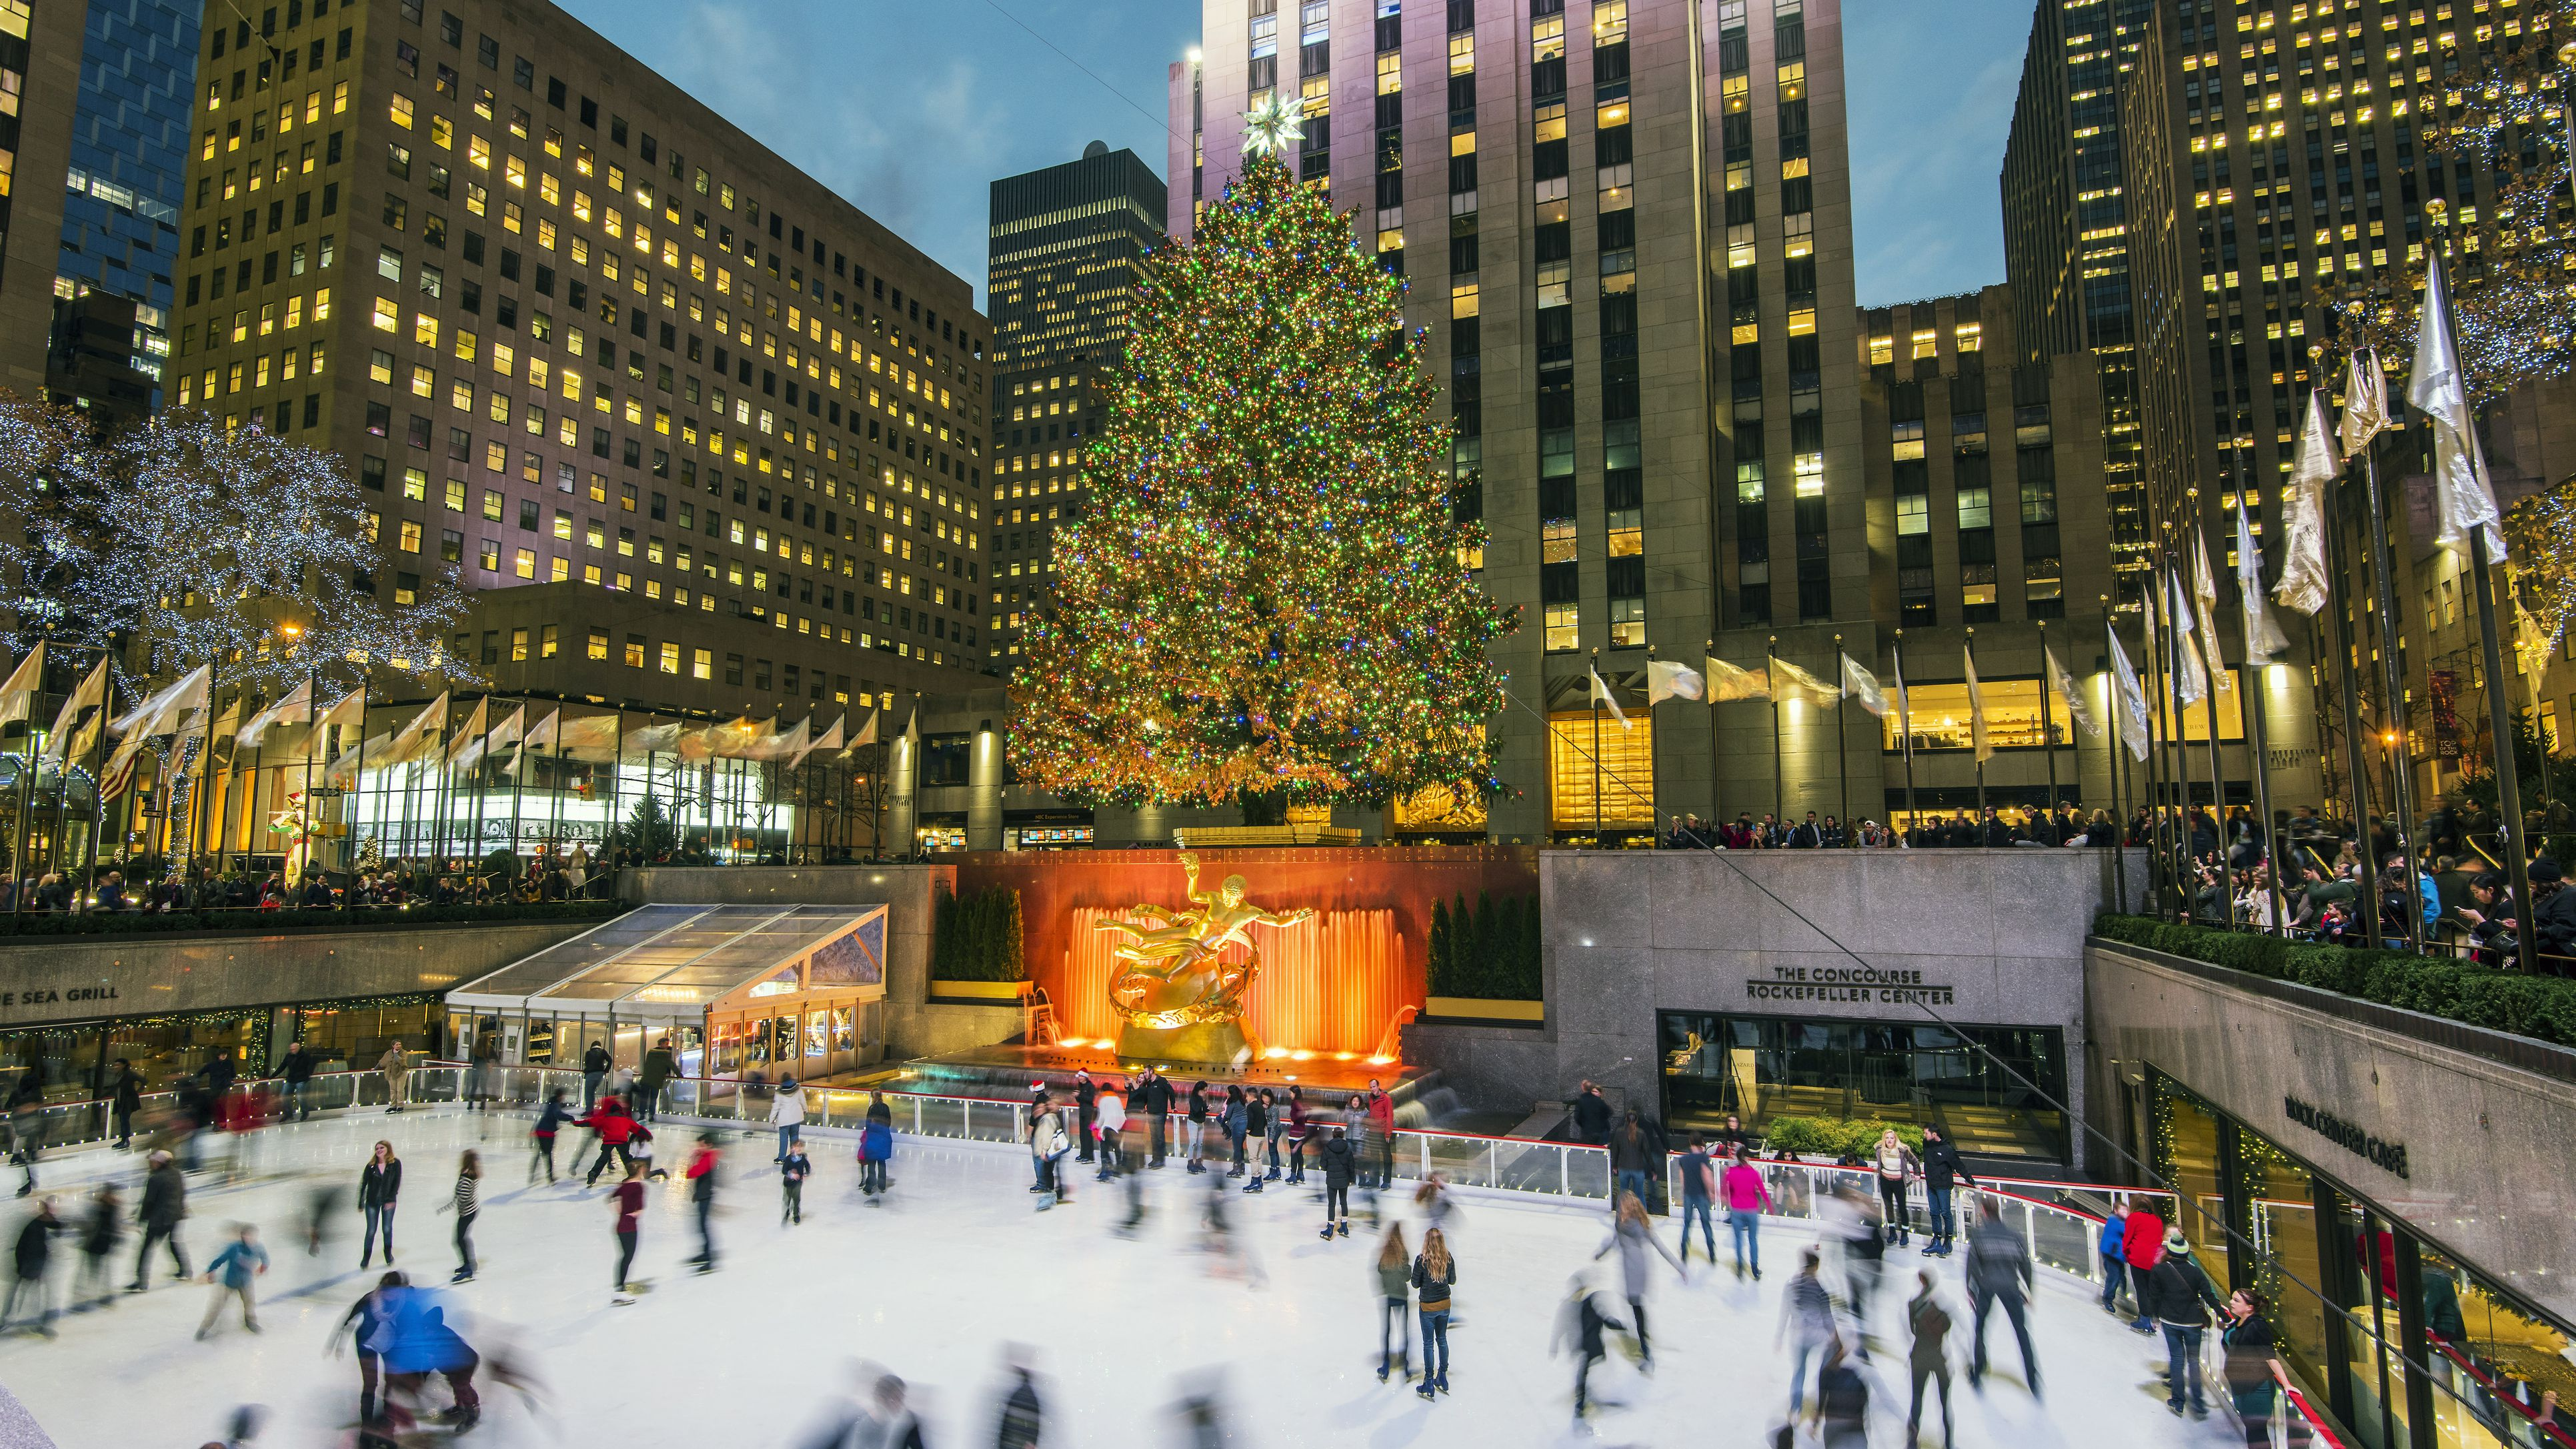 Nyc Christmas.Best Christmas Trees To See In Nyc